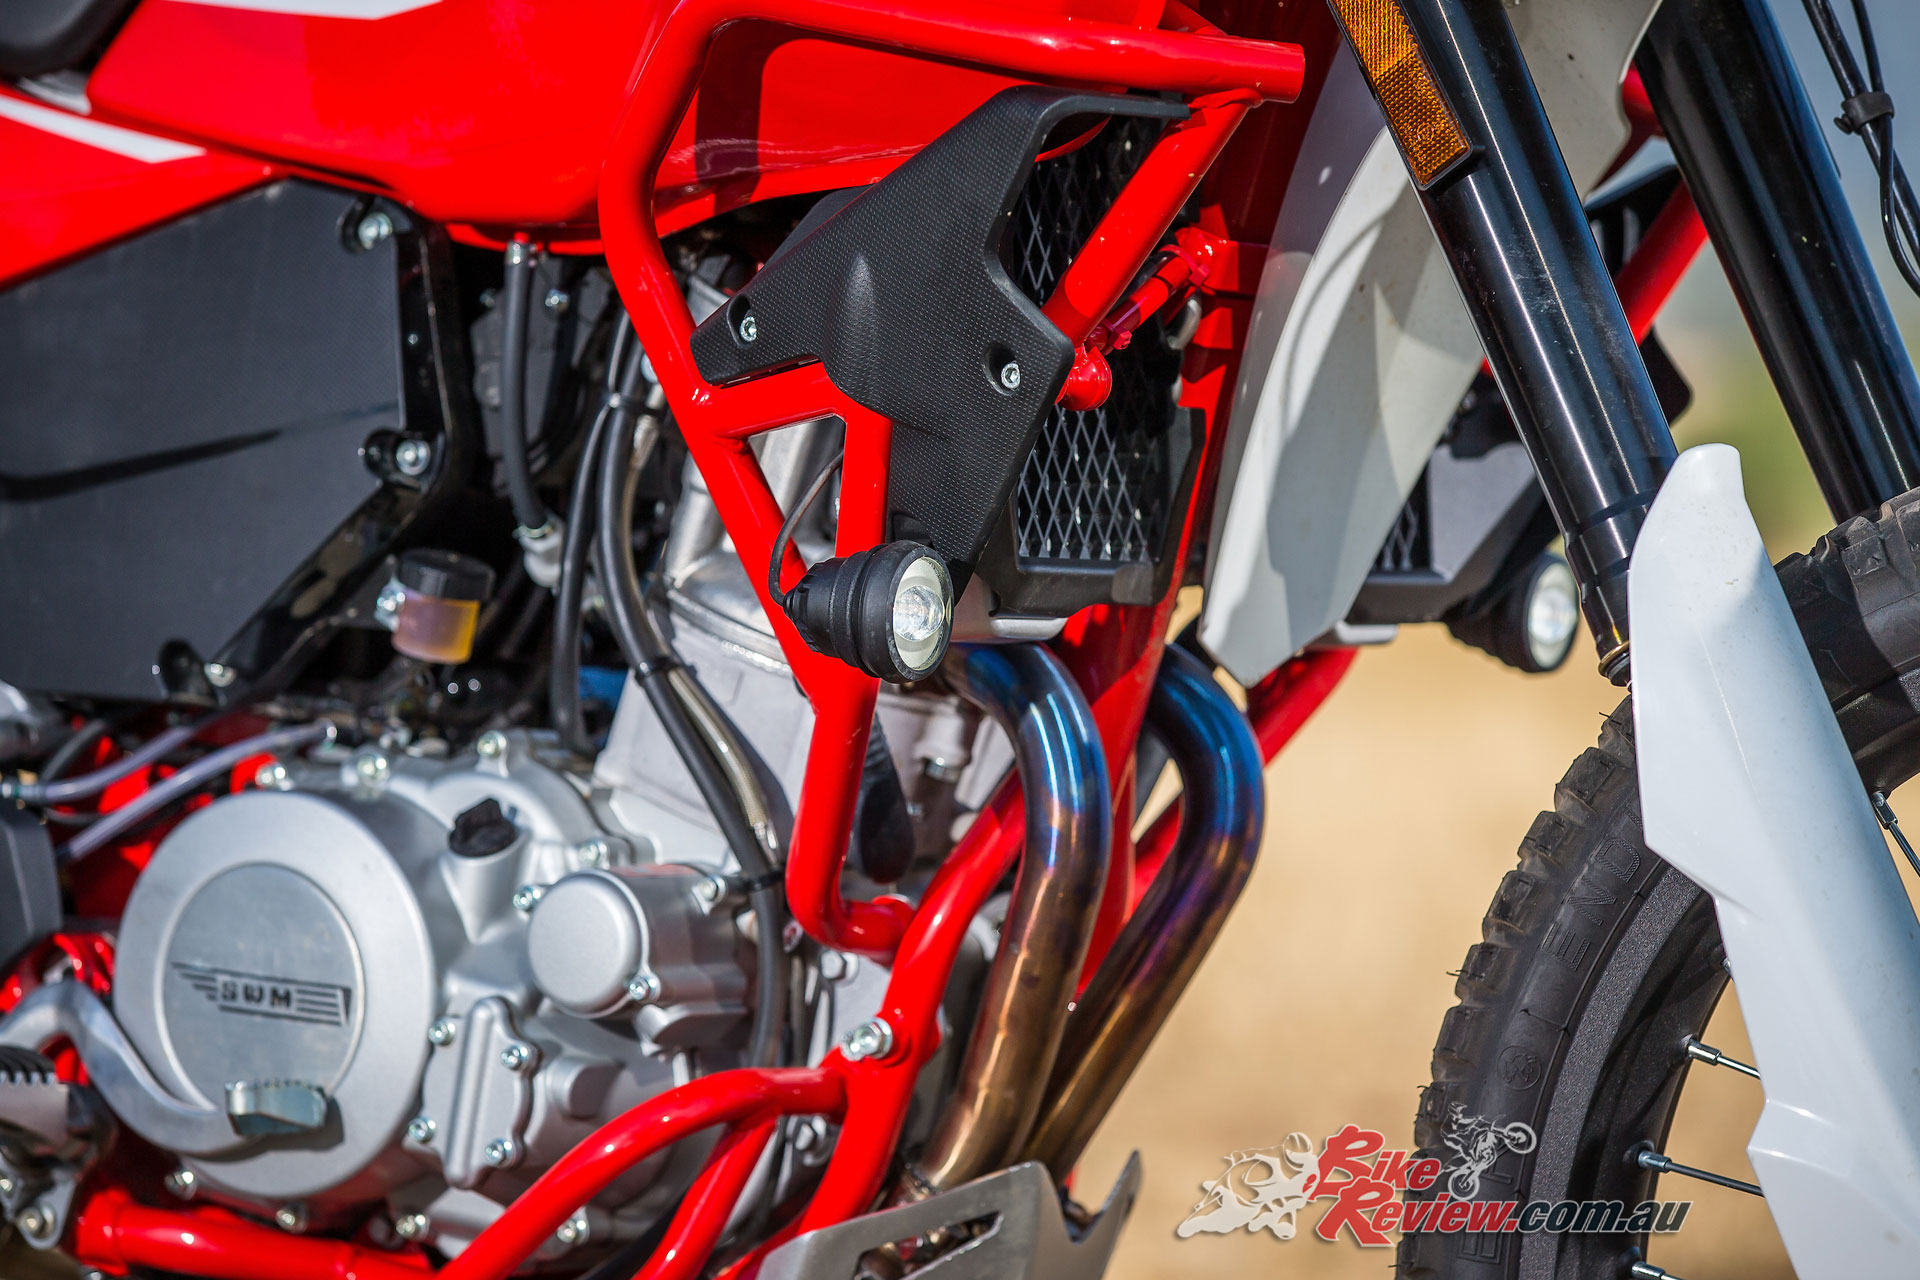 The Husky based 600cc engine is fed by a Mikuni D45 electronic fuel injection system and produces 47kW